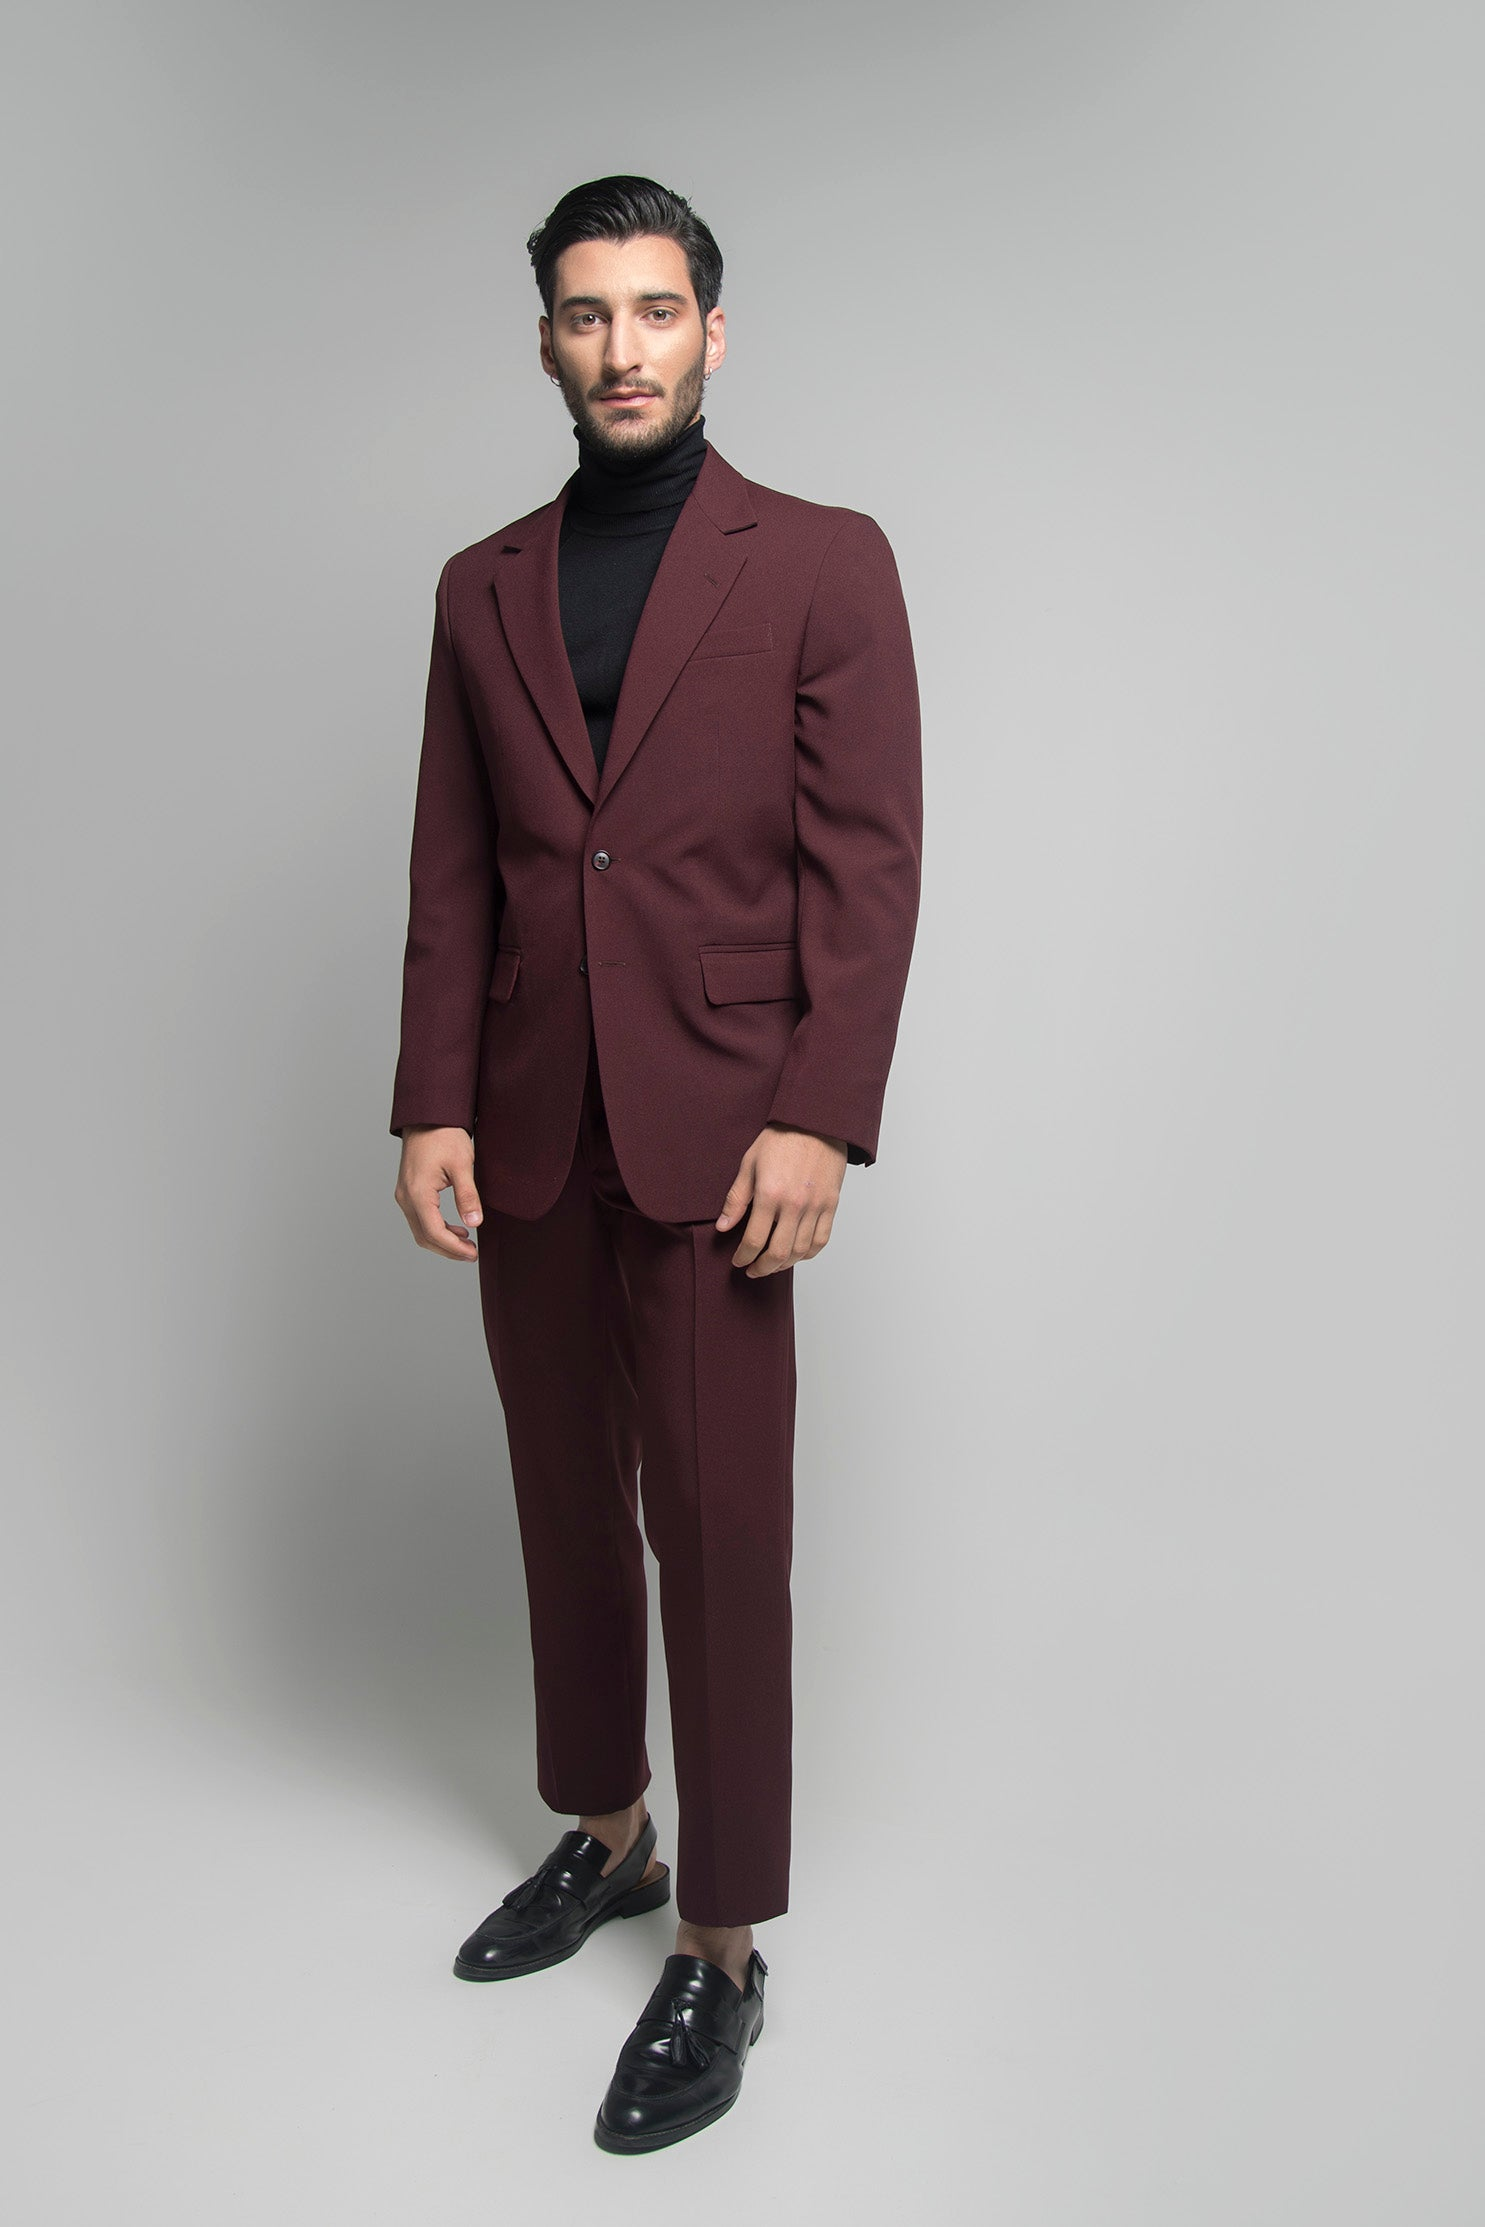 SINGLE BREASTED SUIT IN BURGUNDY